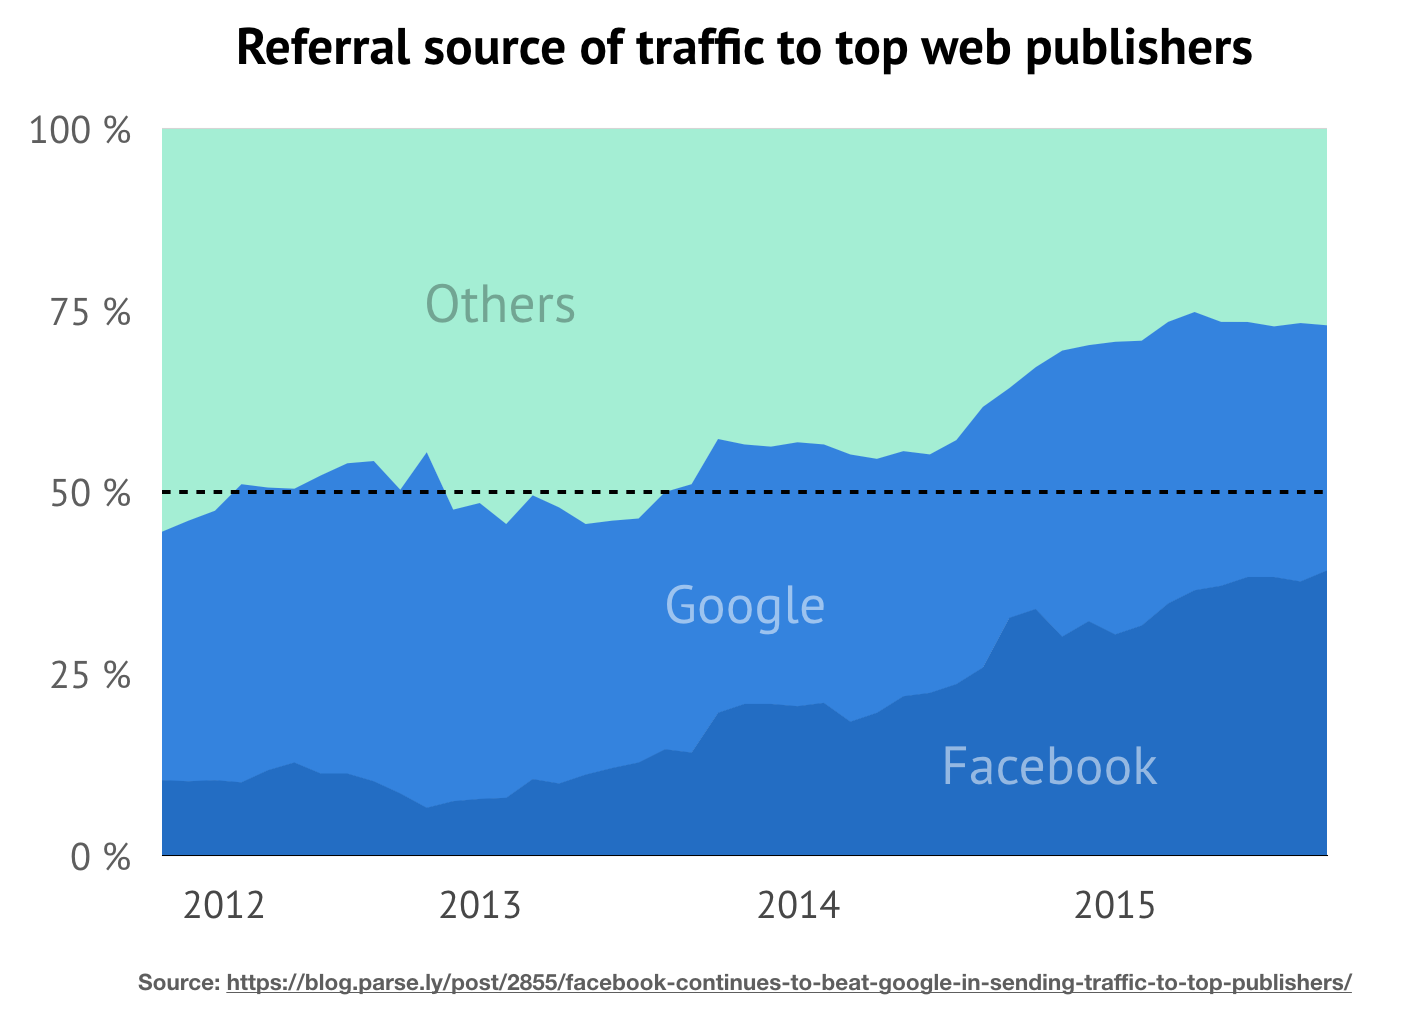 Referral source of traffic to top web publishers